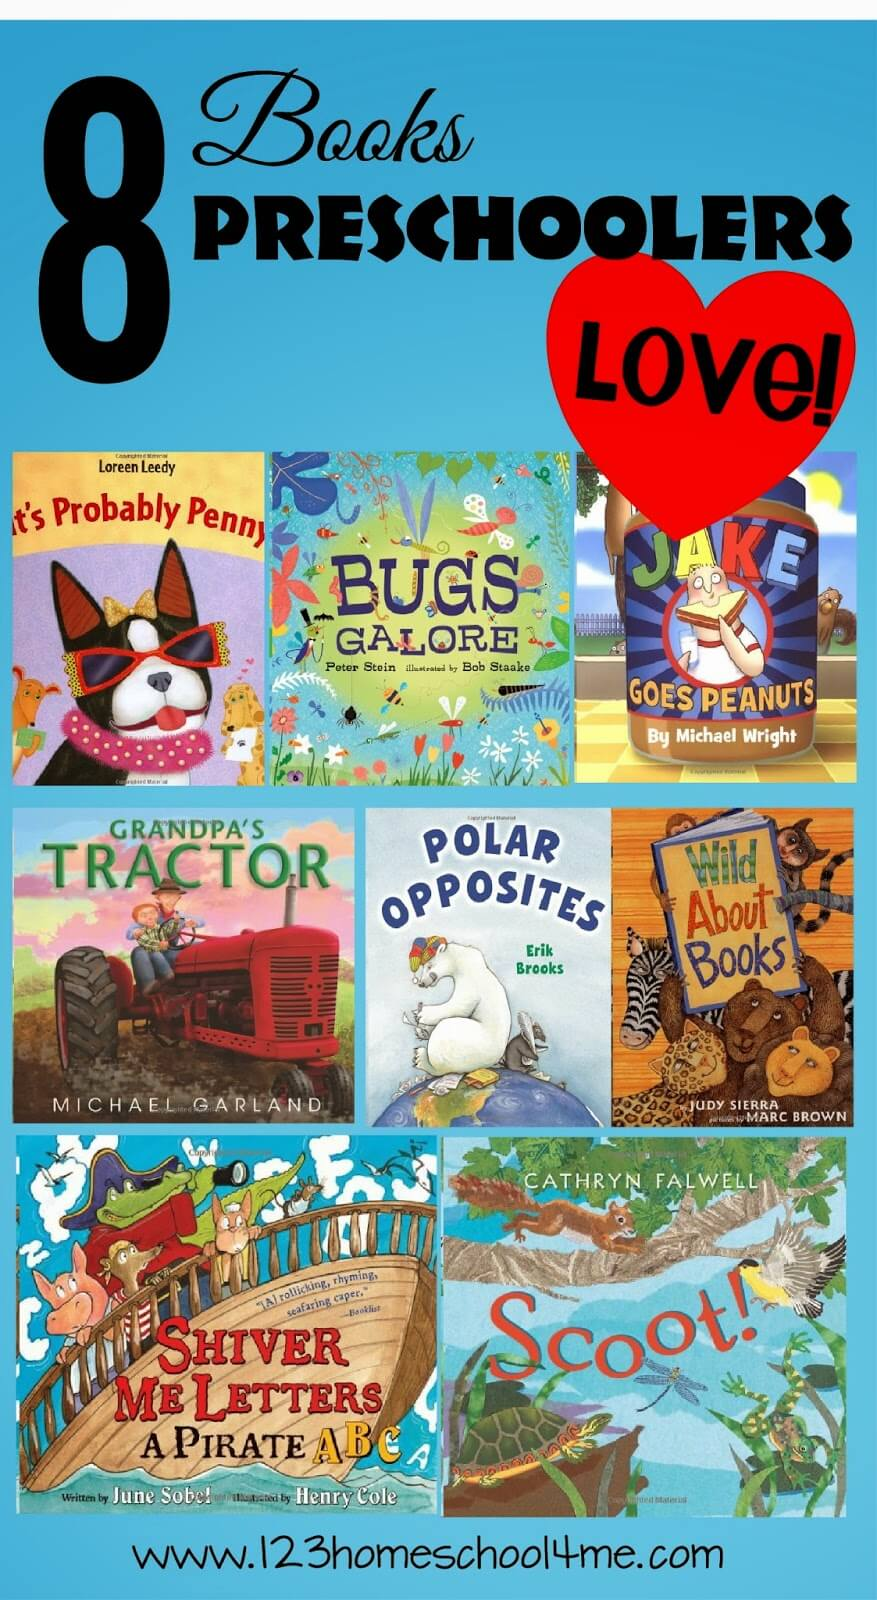 8 Books Preschoolers LOVE #bookrecommendations #preschool #bookstoread